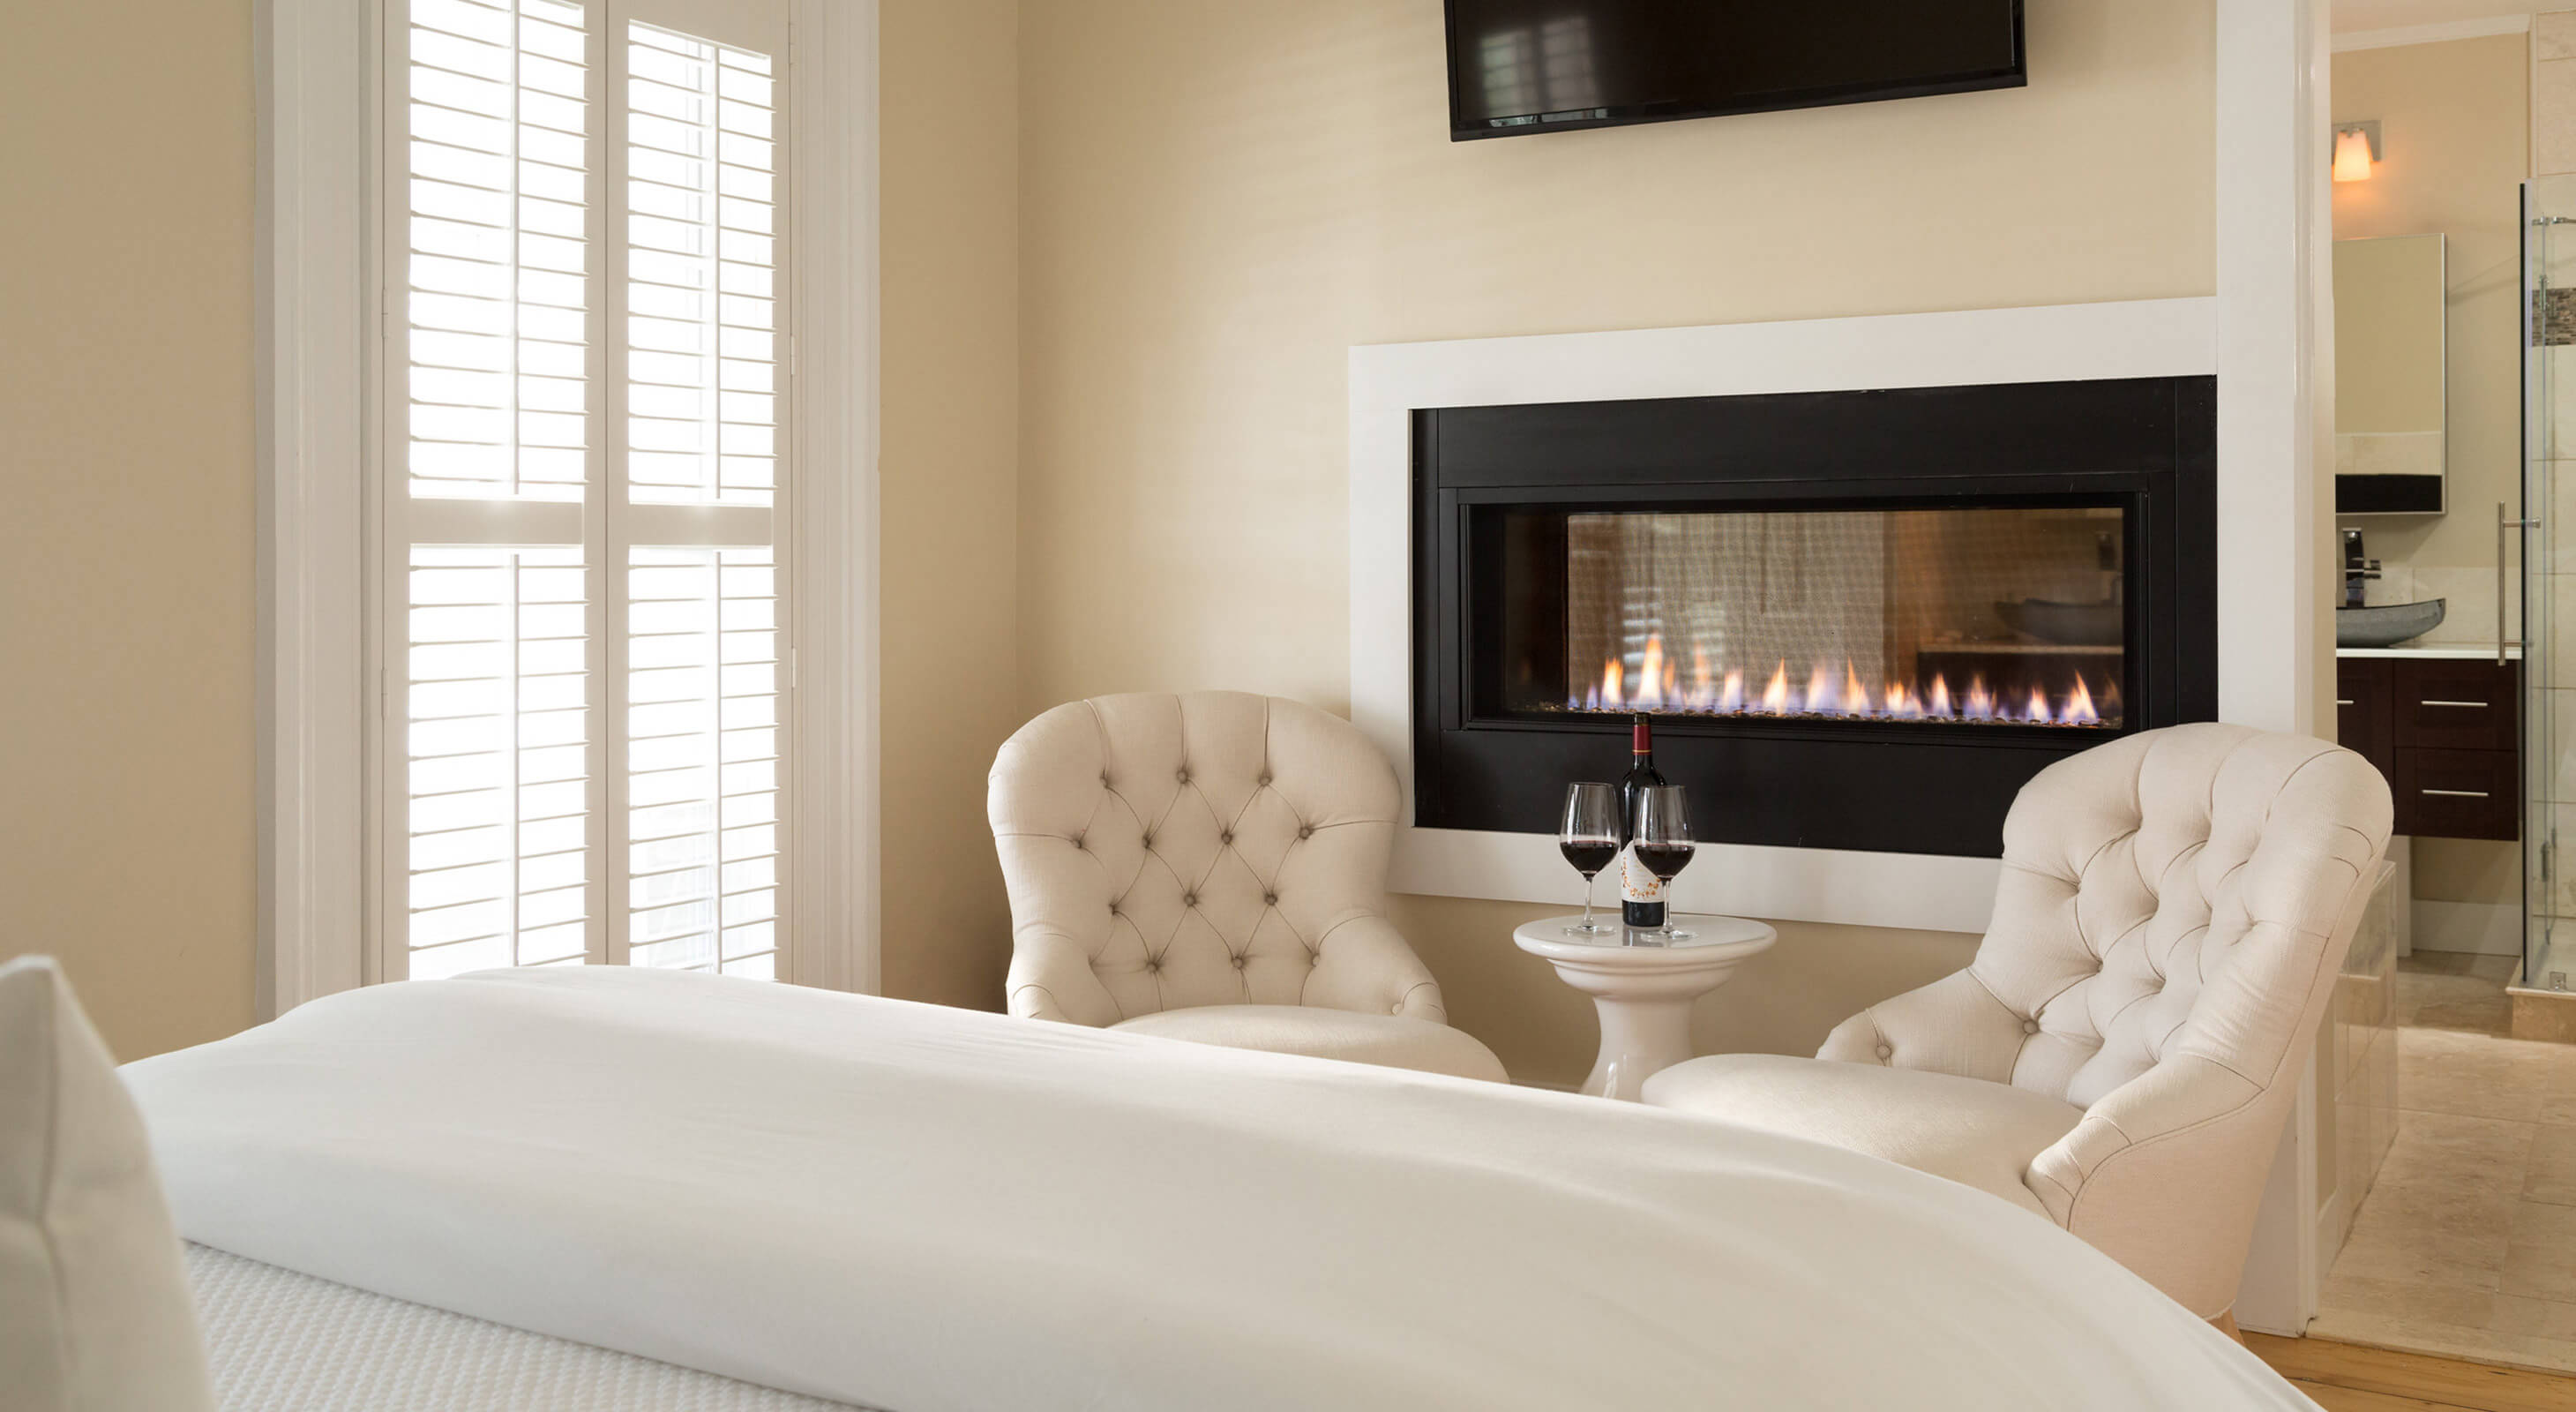 Room 7 seating area with fireplace - Relais & Châteaux Hotel in Chatham